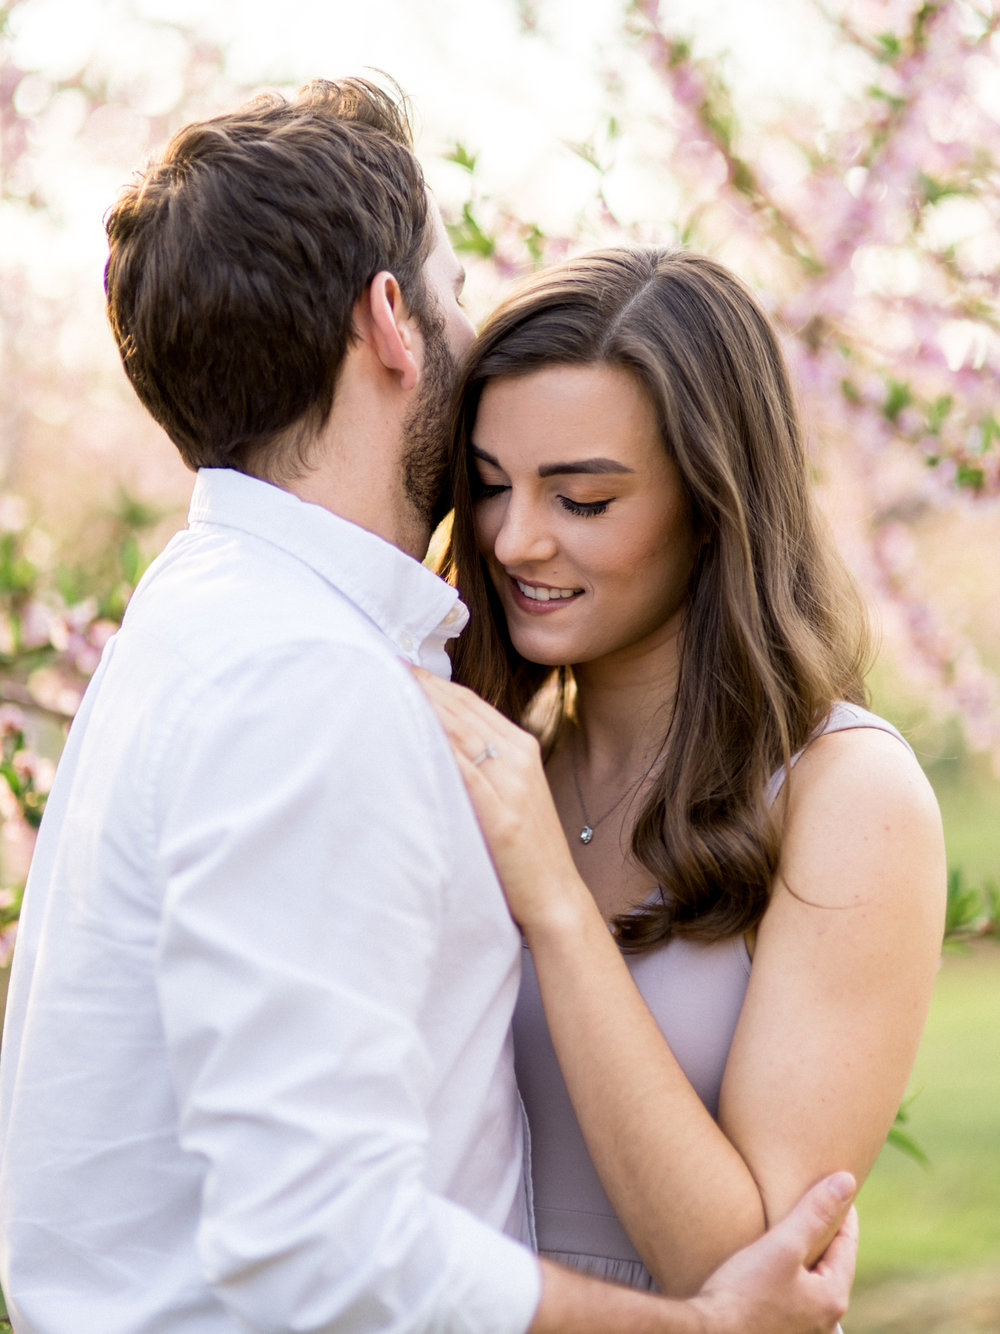 Chris & Heather's Engagement Session in Vineland Ontario Spring Blossoms Trees by Hush Hush Photography & Film Aidan Hennebry - 10.jpg